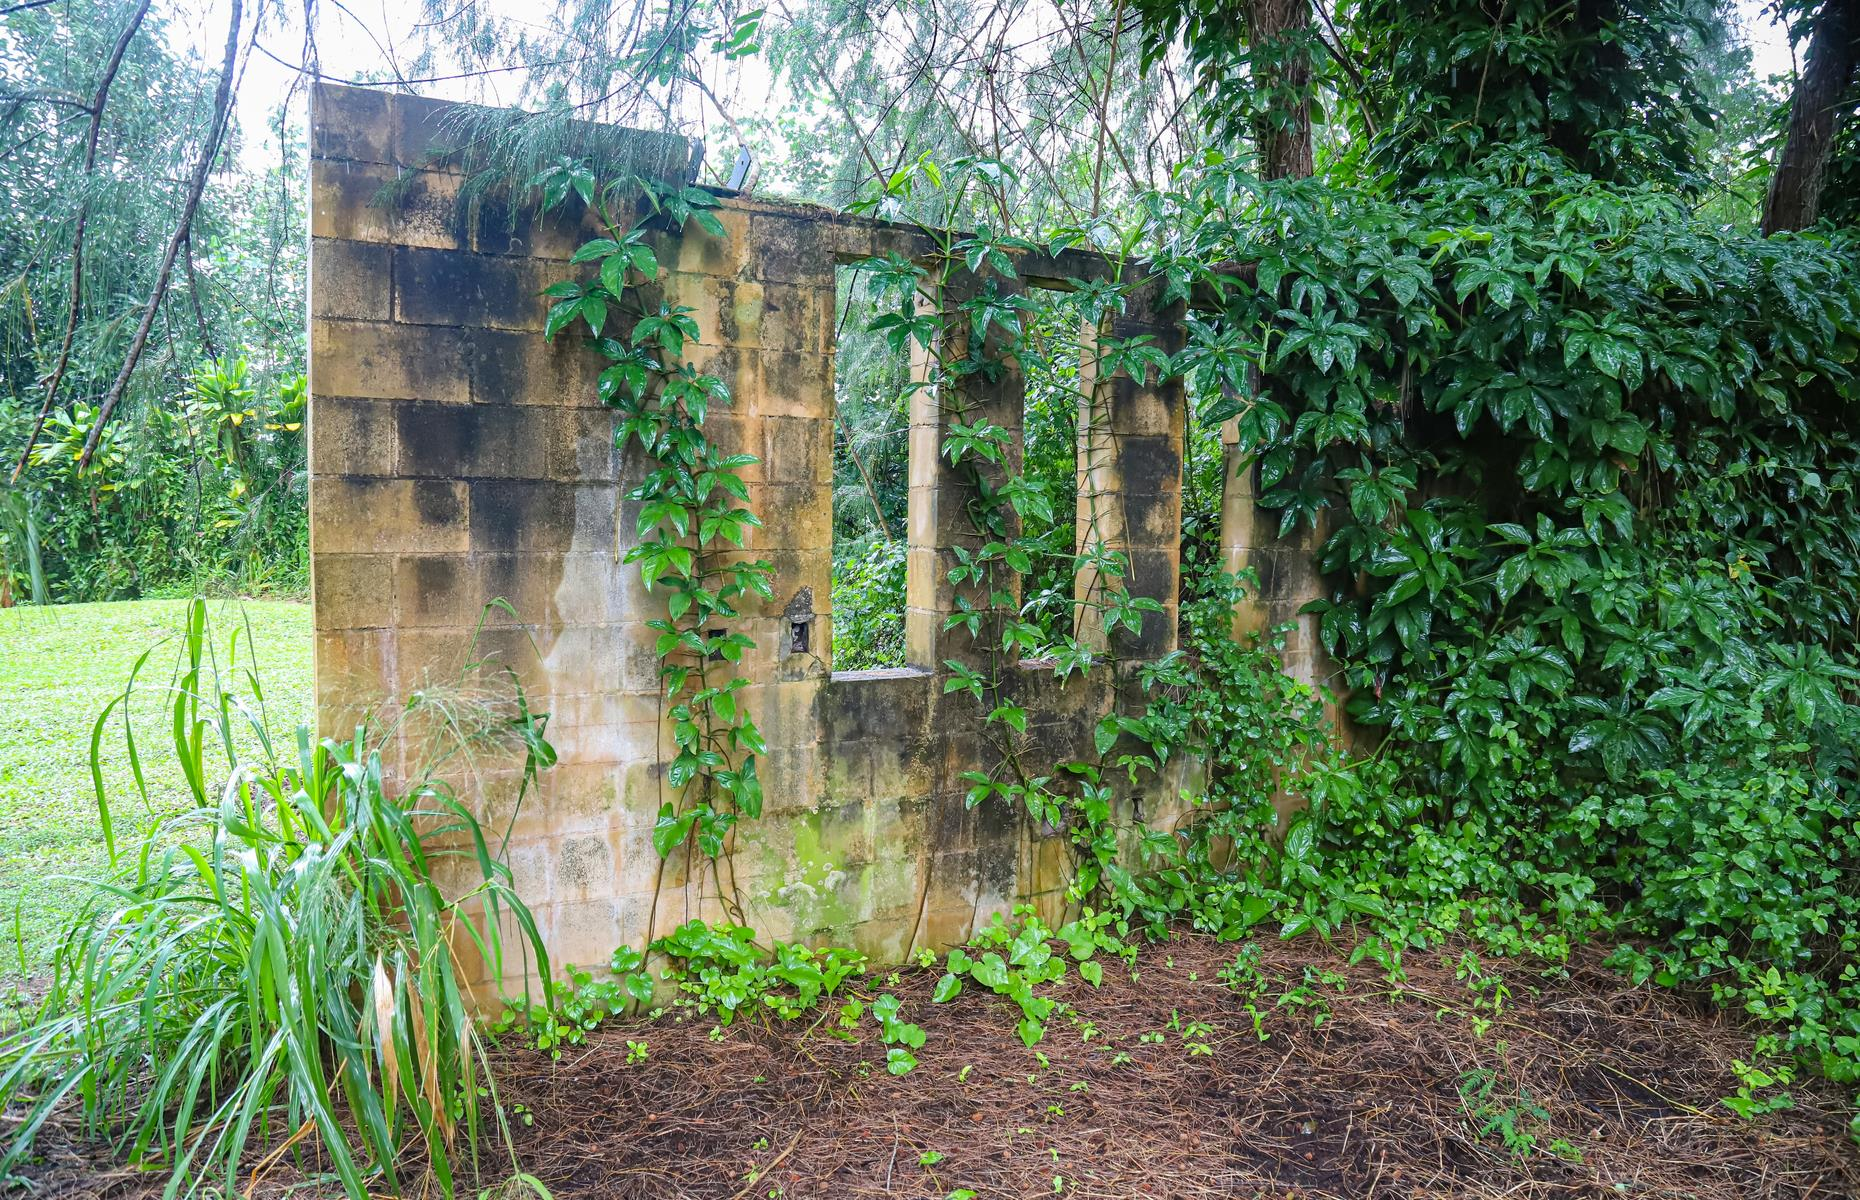 Slide 13 of 52: The eerie ruins of an old resort are tucked away above Hanalei Bay, on the north shore of The Garden Isle. Old Club Med had its glittering heyday in the Sixties and Seventies, but today all that's left is a series of weather-beaten walls and foundations shrouded by greenery. It's accessible via the verdant Old Club Med Trail.